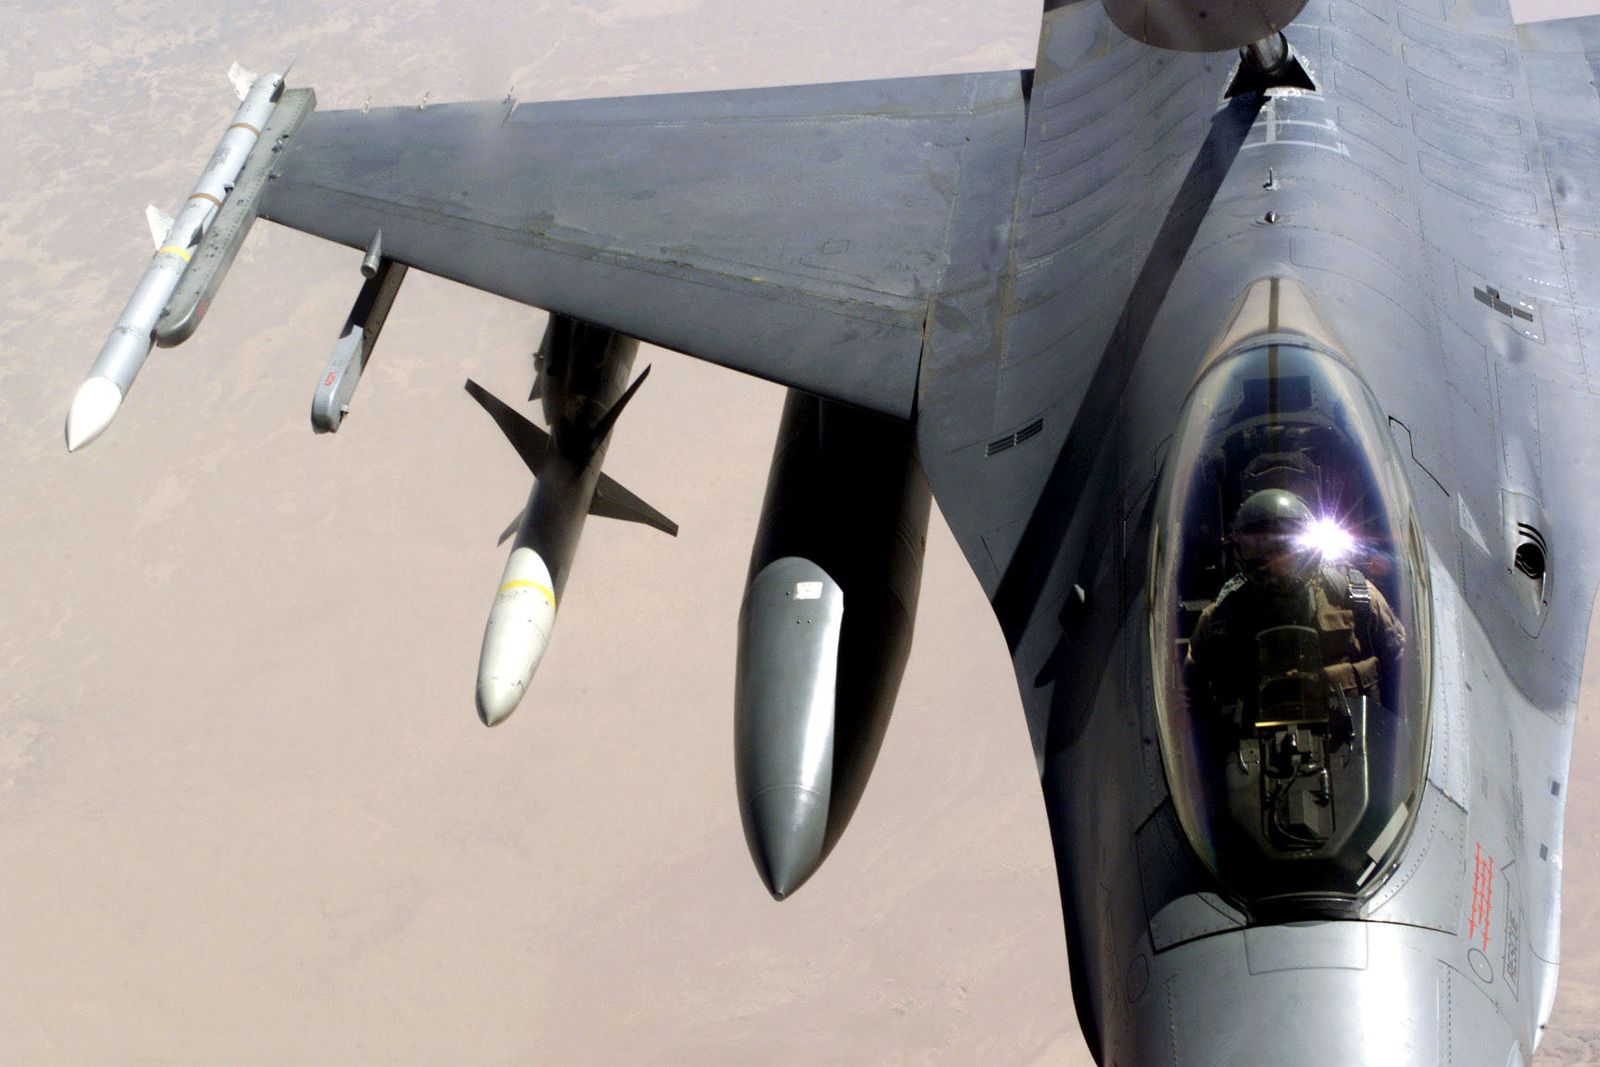 An F-15 Eagle aircraft refuels from a K-135 Stratotanker aircraft (not shown) over Saudi Arabia in support of Operation SOUTHERN WATCH. The F-15 is equipped with AIM 7 Sparrow missiles and AIM 120 advanced medium-range air-to-air missiles (AMRAAM) and is part of the coalition forces of the 363rd Air Expeditionary Wing who enforce the no-fly and no-drive zone in Southern Iraq to protect and defend against Iraqi aggression